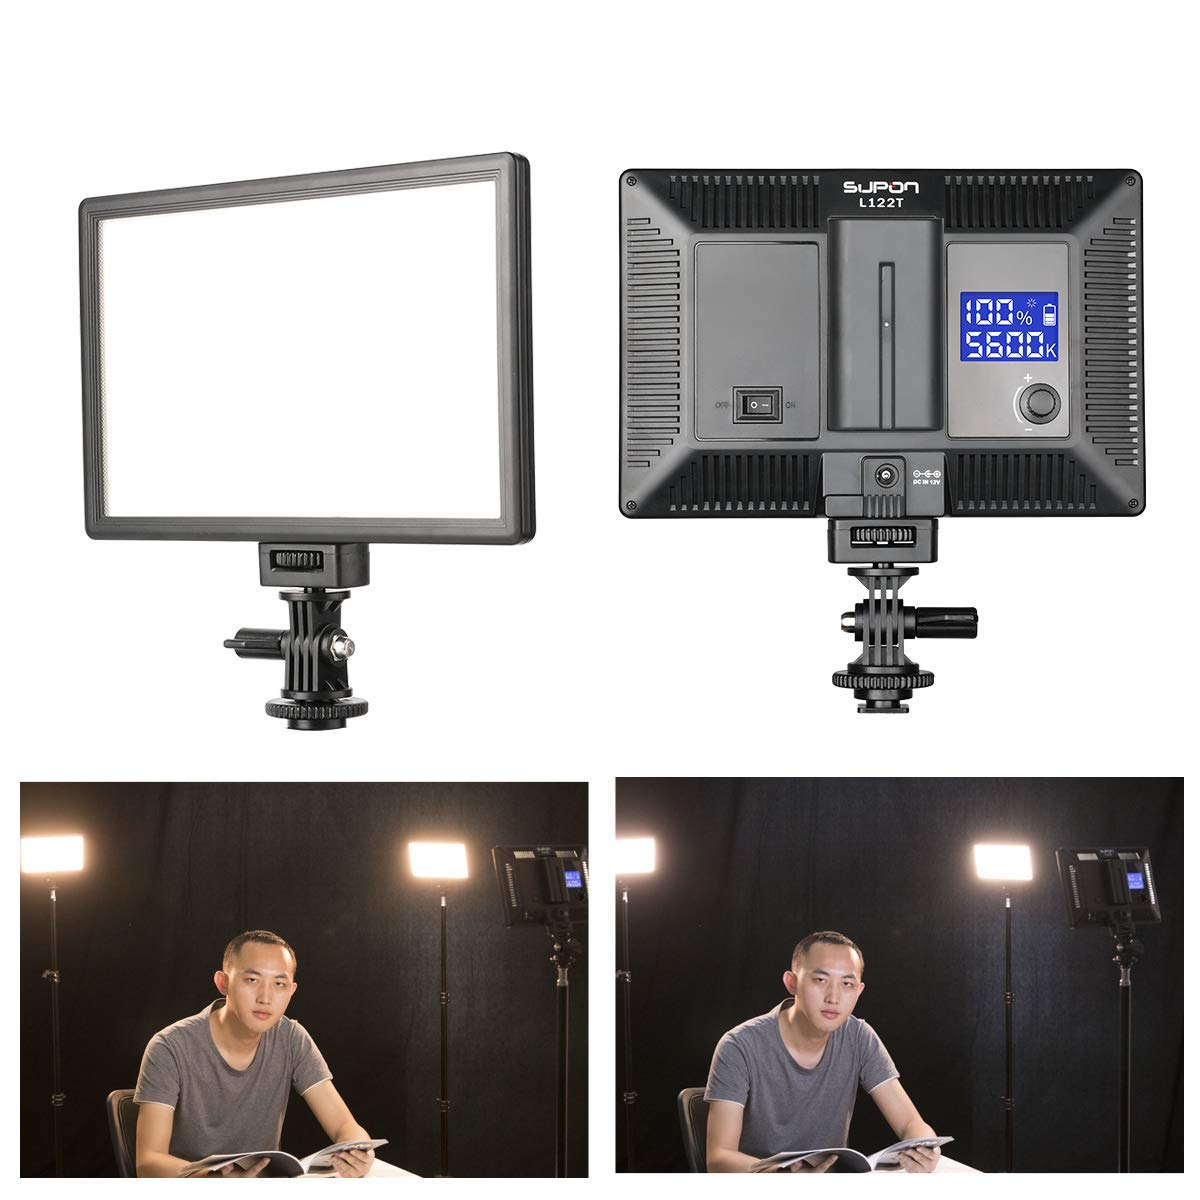 SUPON LED-L122T RA CRI95 Super Slim LCD Display Lighting Panel,Portable Dimmable 3300K-5600K LED Video Light Compatible for Canon,Nikon,Pentax,Fuji,Sony,Olympus DSLR Cameras,DV Camcorder by SUPON